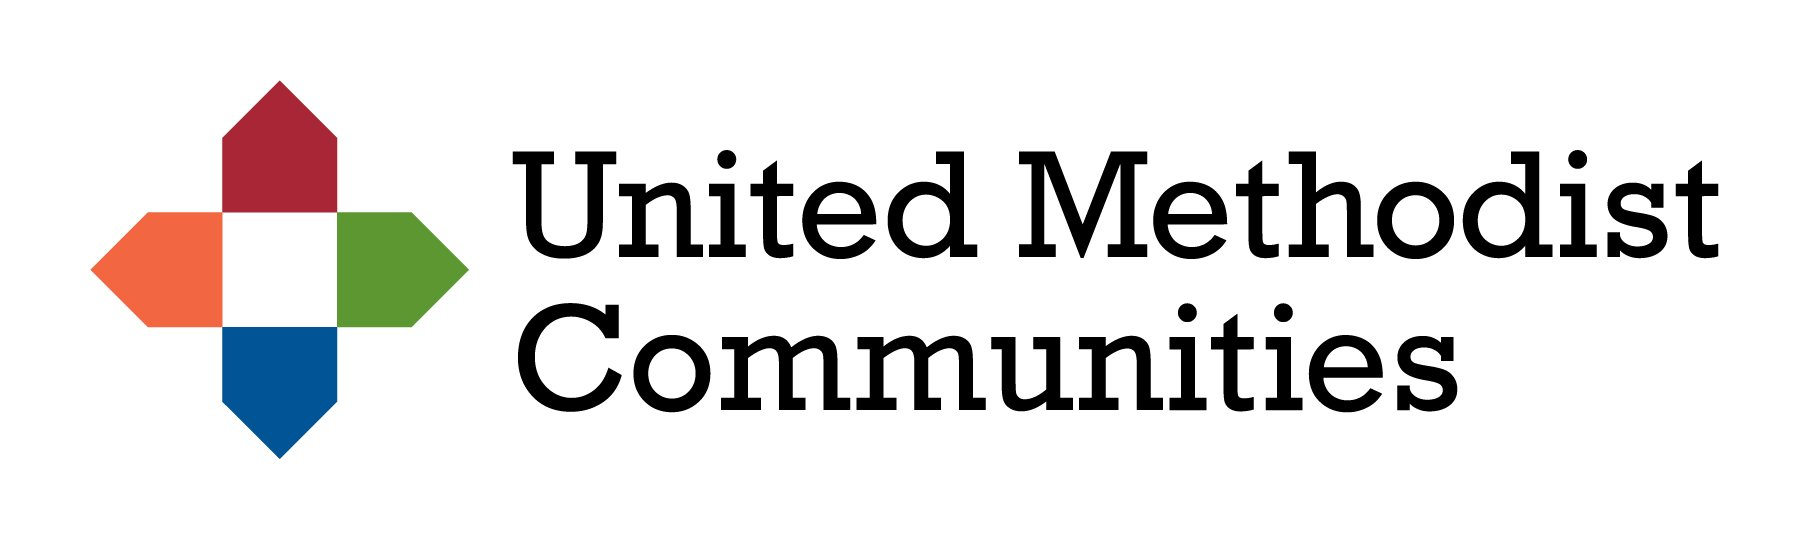 United Methodist Communities